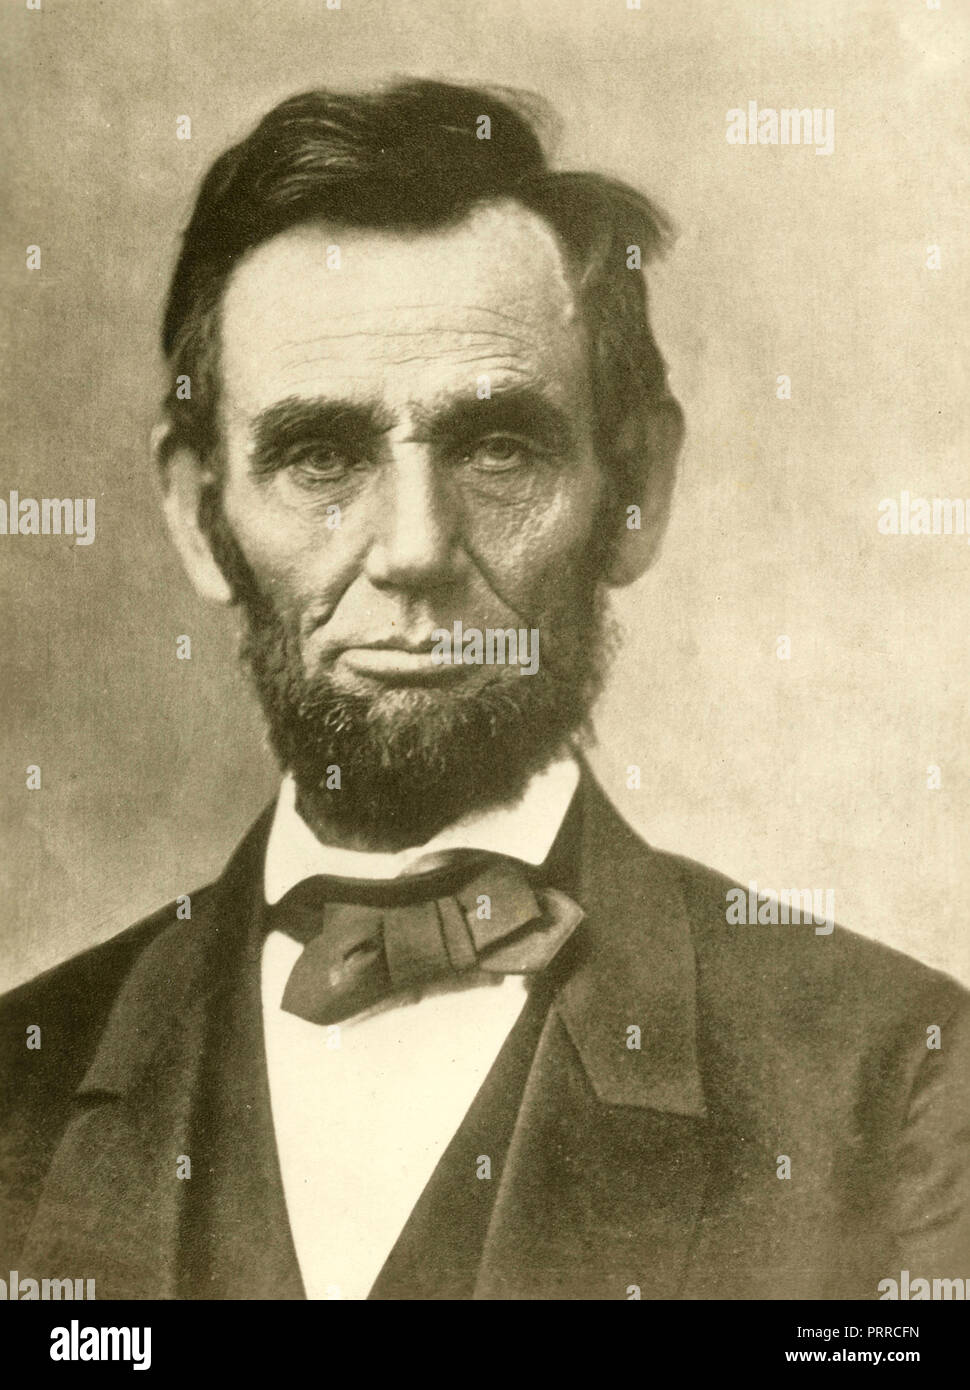 US President Abraham Lincoln - Stock Image